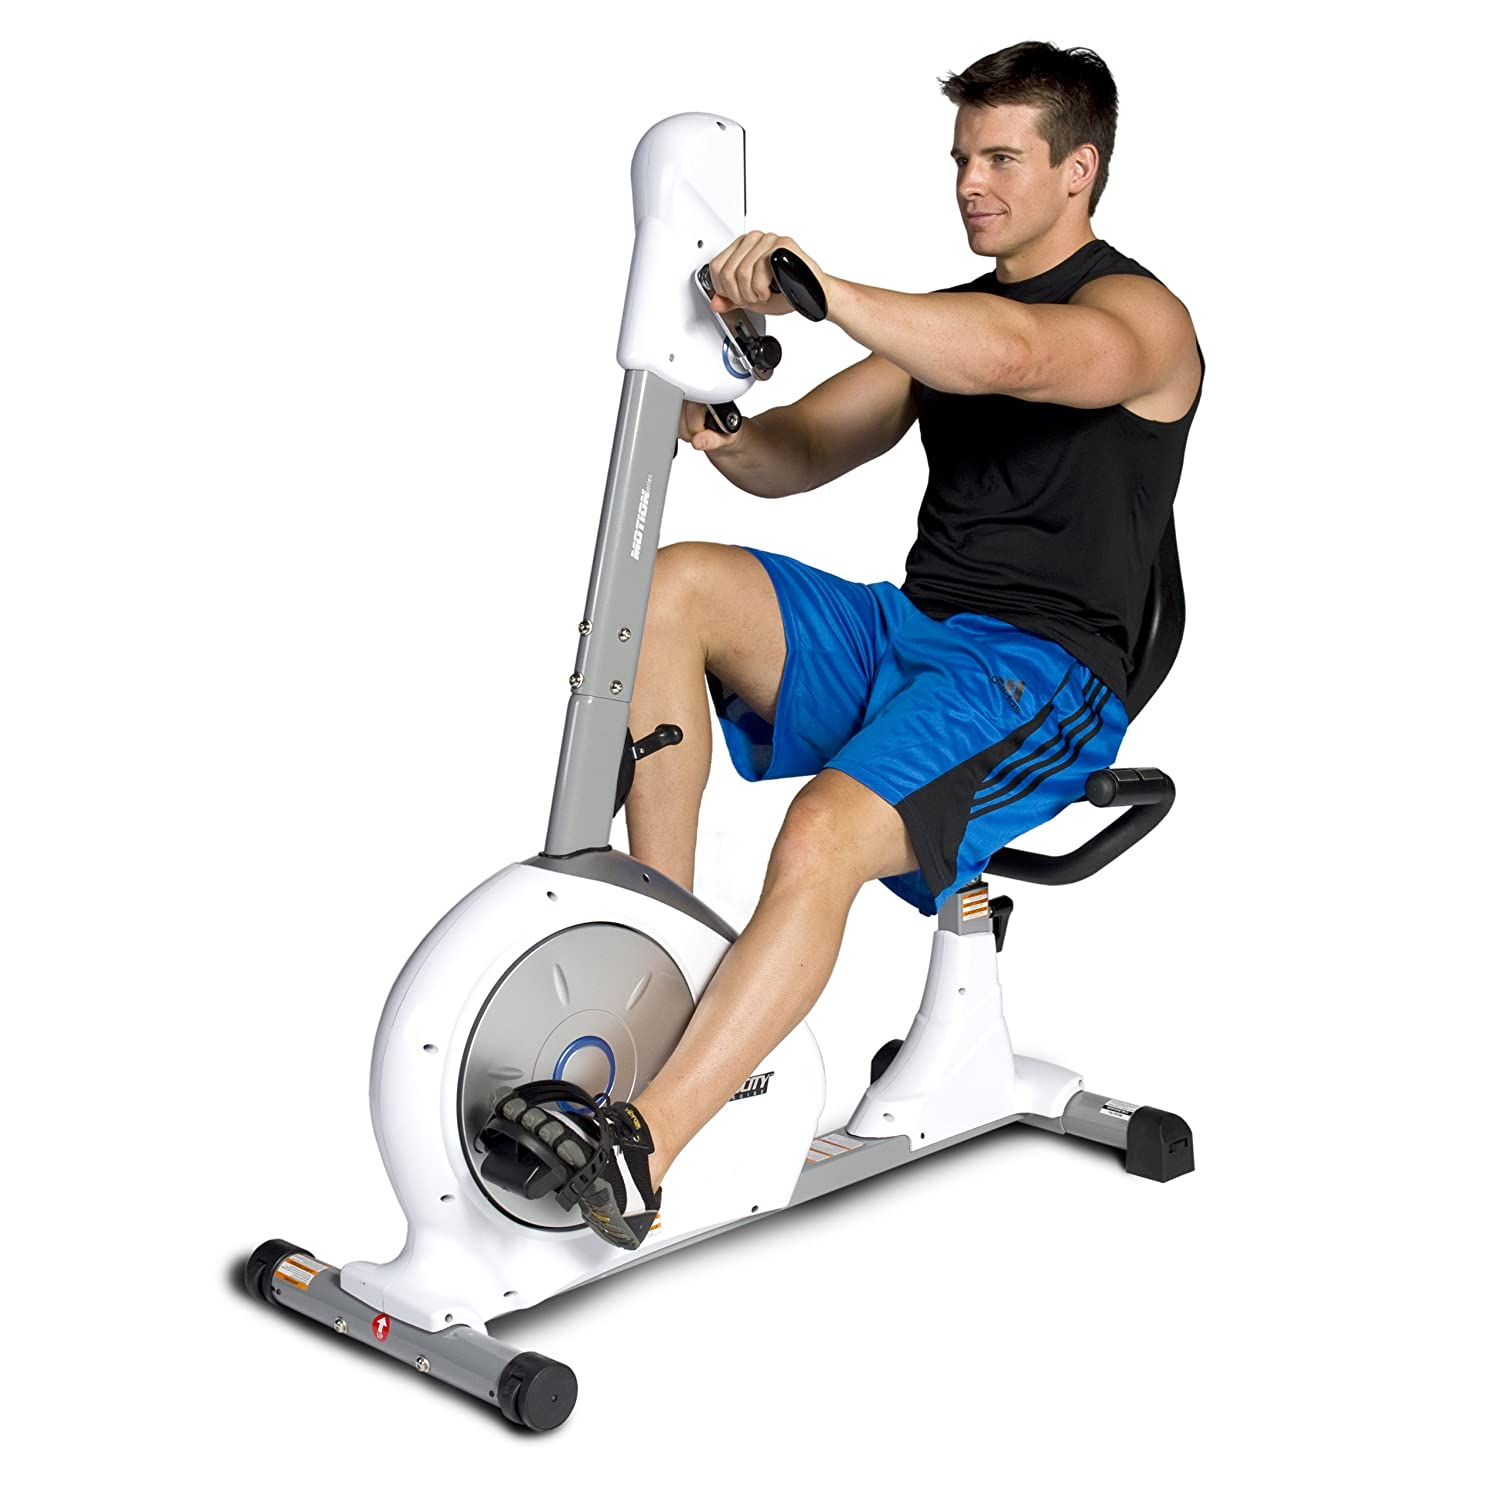 Amazon.com  Velocity Exercise Dual Motion Recumbent Bike  Sports u0026 Outdoors  sc 1 st  Amazon.com & Amazon.com : Velocity Exercise Dual Motion Recumbent Bike : Sports ... islam-shia.org